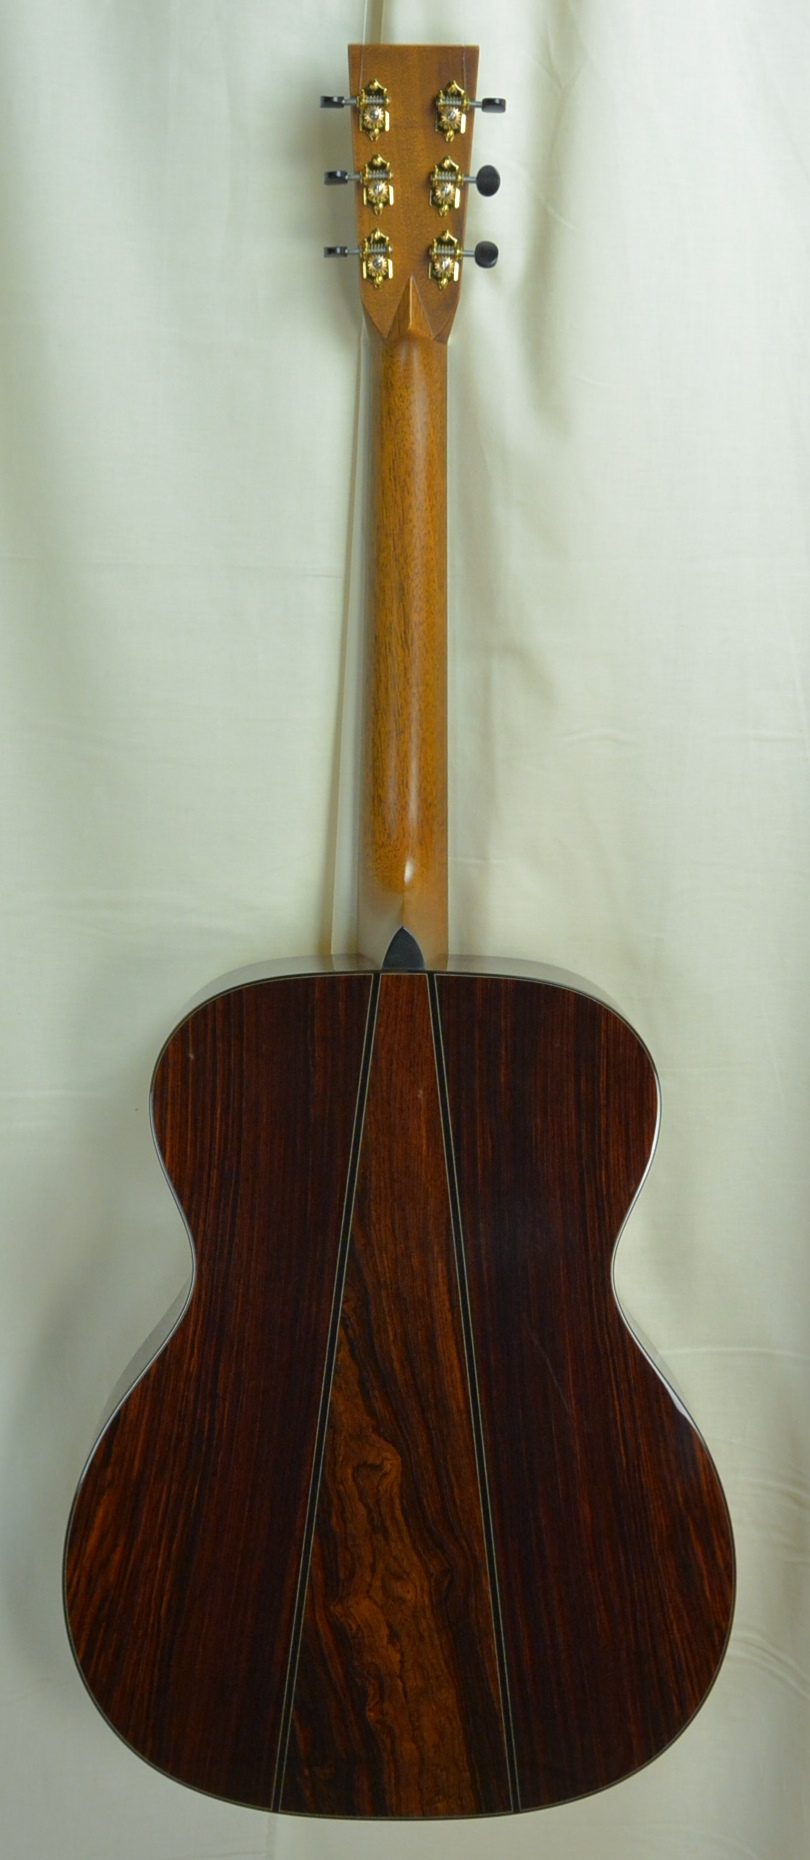 Q-2602124 S-1914908 OM-35 Cocobolo-Coco wedge Sitka M1 (2).JPG